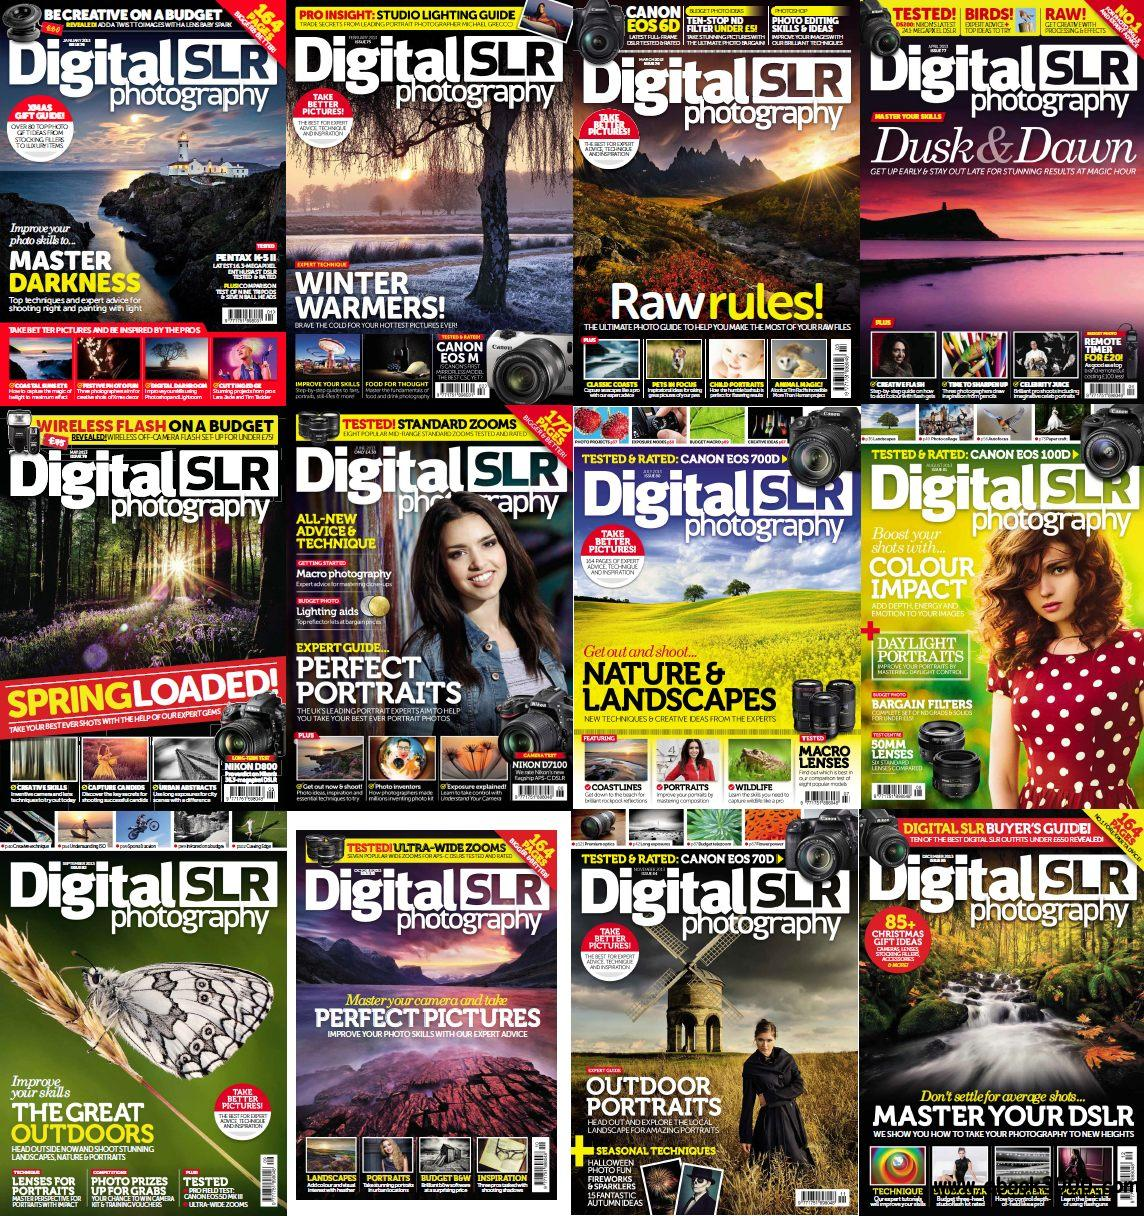 Digital SLR Photography - Full Year 2013 Issues Collection free download